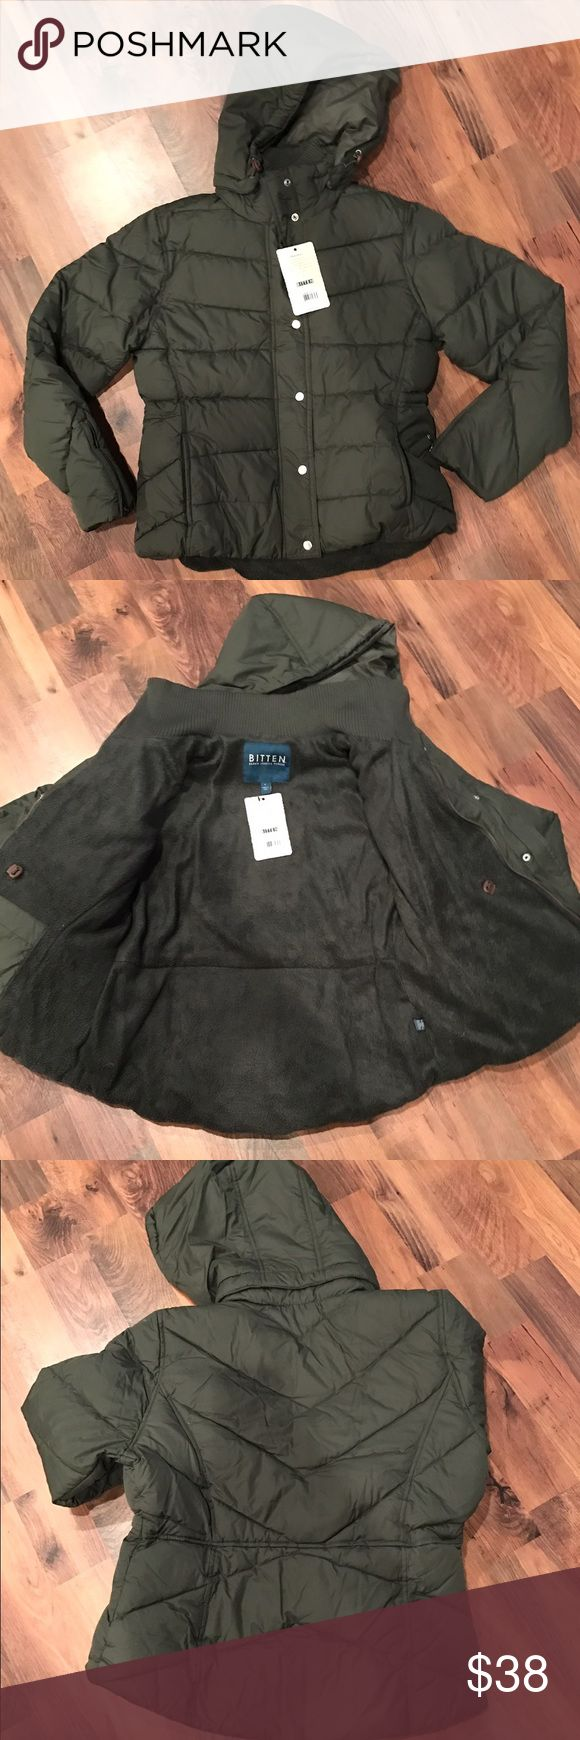 """NWT: Green """"Bitten by Sarah Jessica Parker"""" coat NWT: Olive green """"Bitten by Sarah Jessica Parker coat. Fully lined w/button and zip closure. Side slant pockets, detachable hood. Size large Bitten by Sarah Jeasica Parker Jackets & Coats Puffers"""